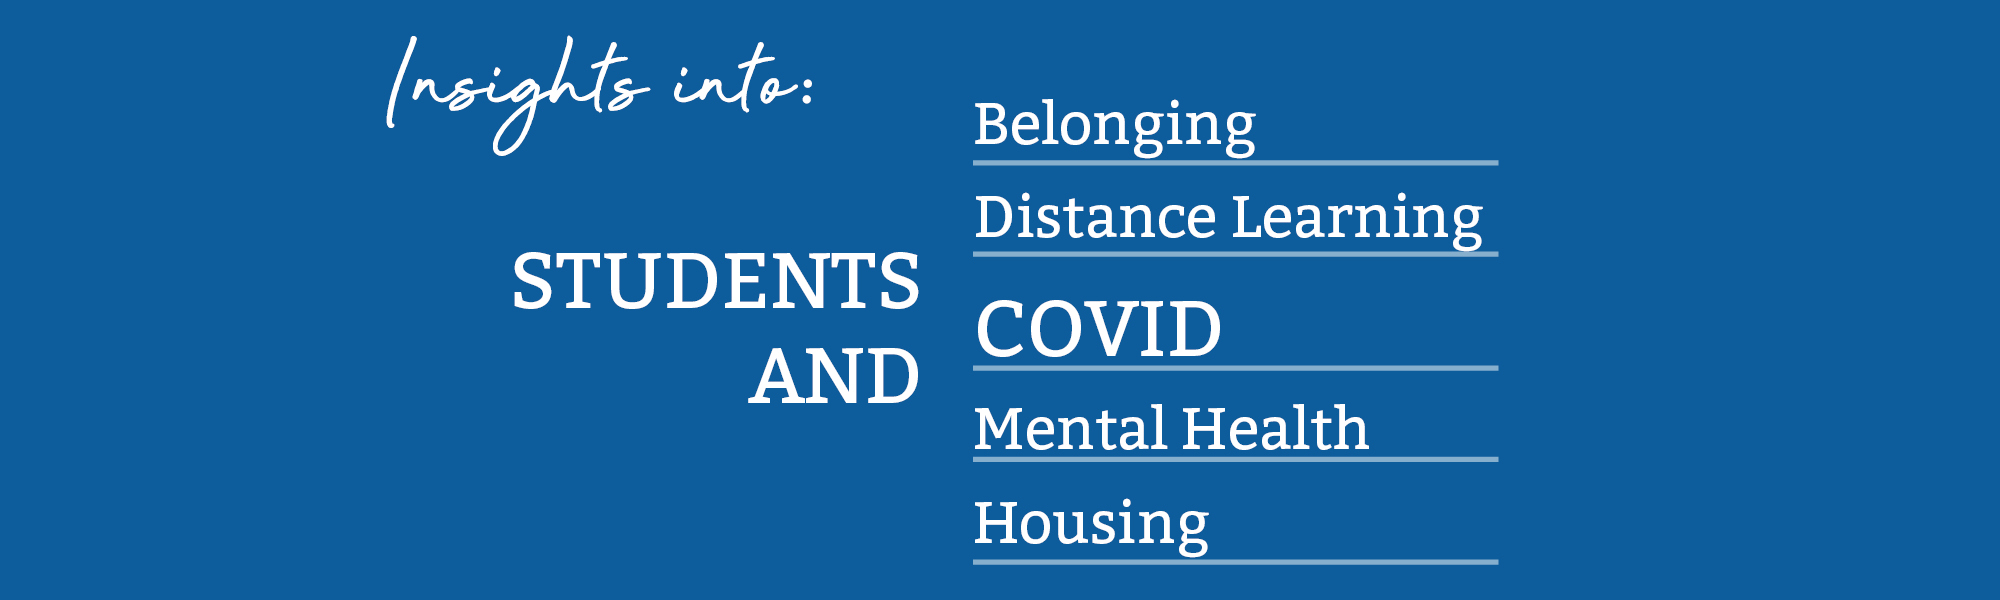 The Sonoma County YouthTruth Survey offers insights into students and belonging, distance learning, covid, mental health, housing